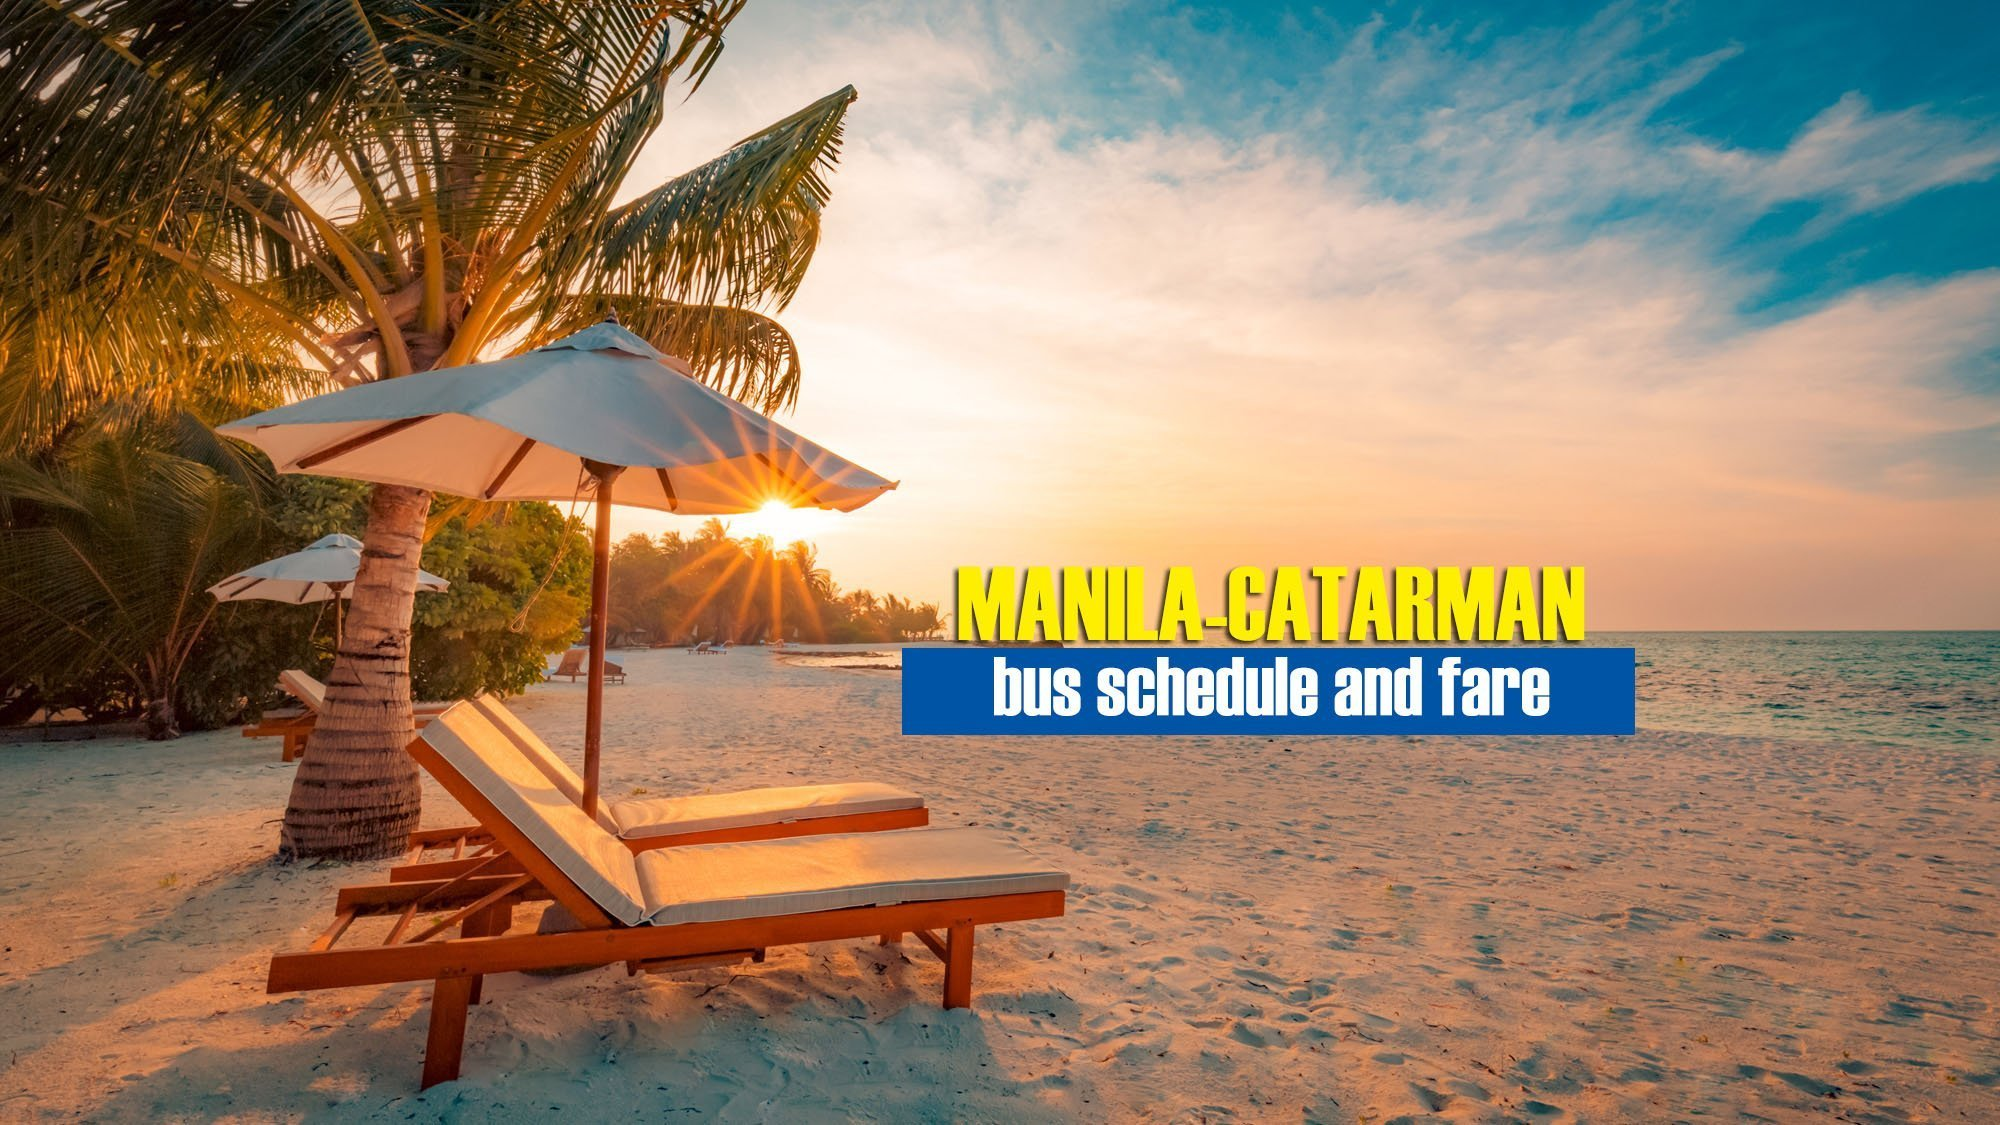 Manila to Catarman: 2019 Bus Schedule & Fare